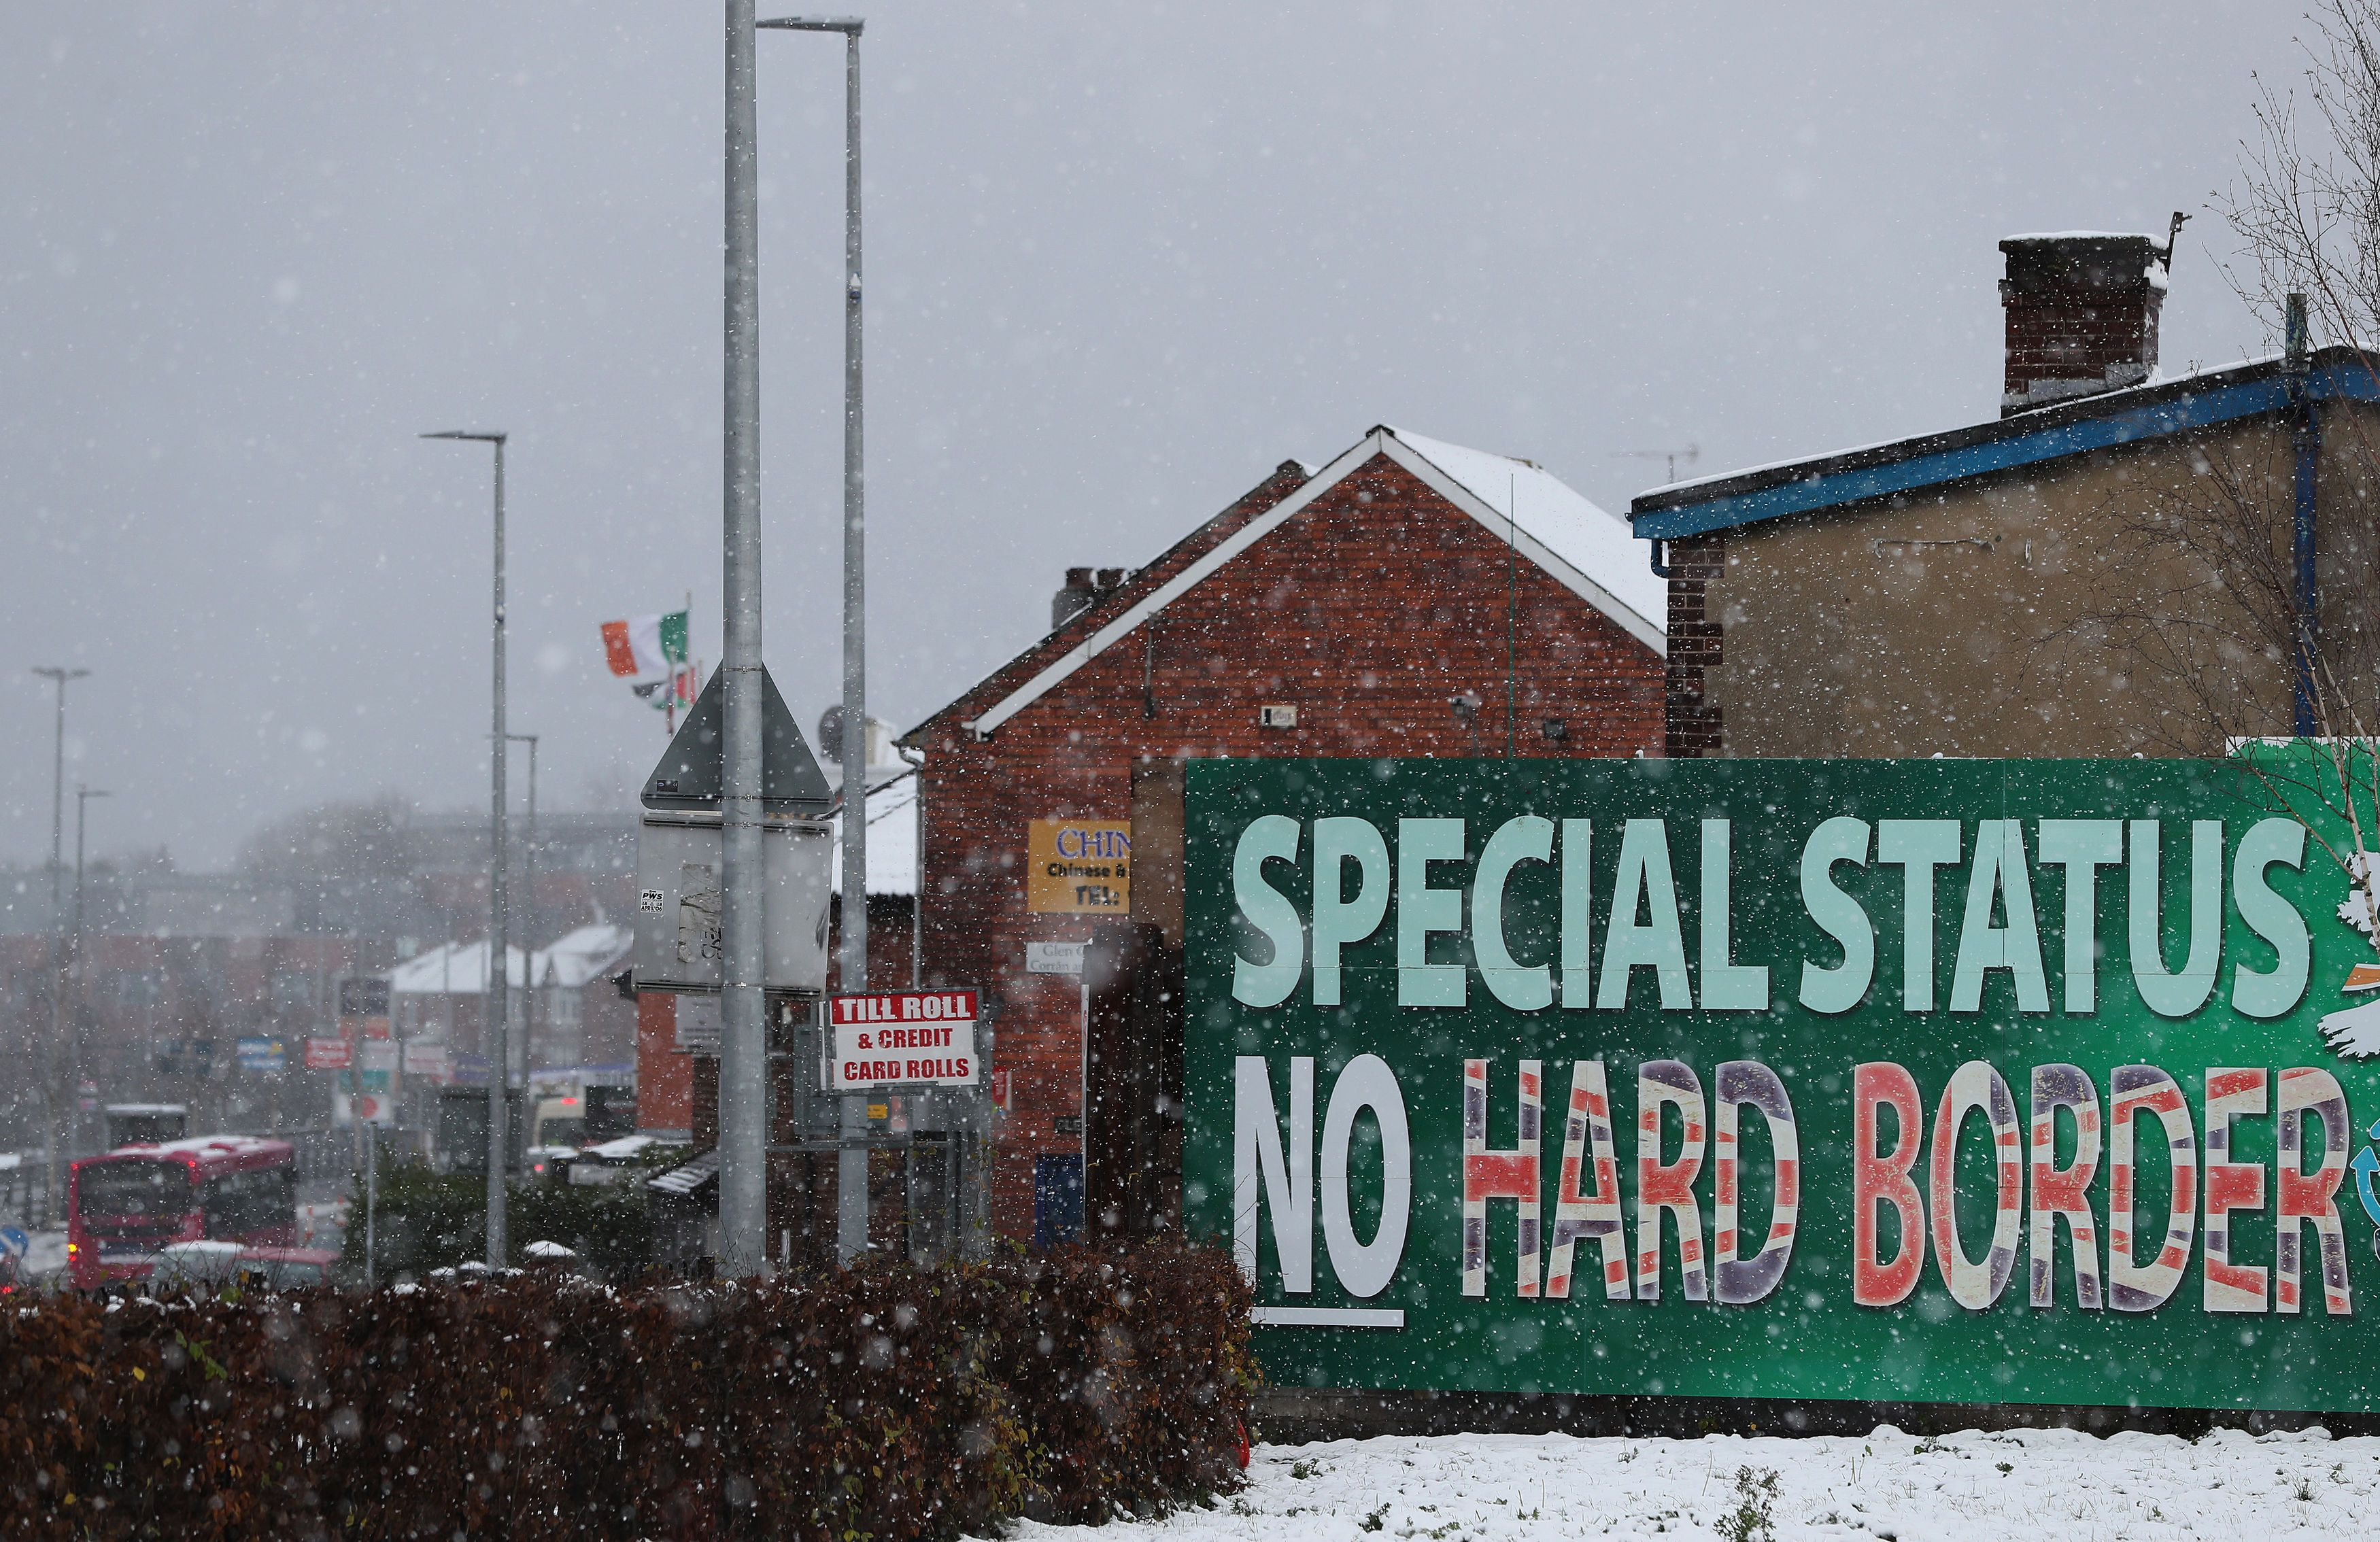 A Sinn Fein billboard calling for 'No Hard Border' on display in